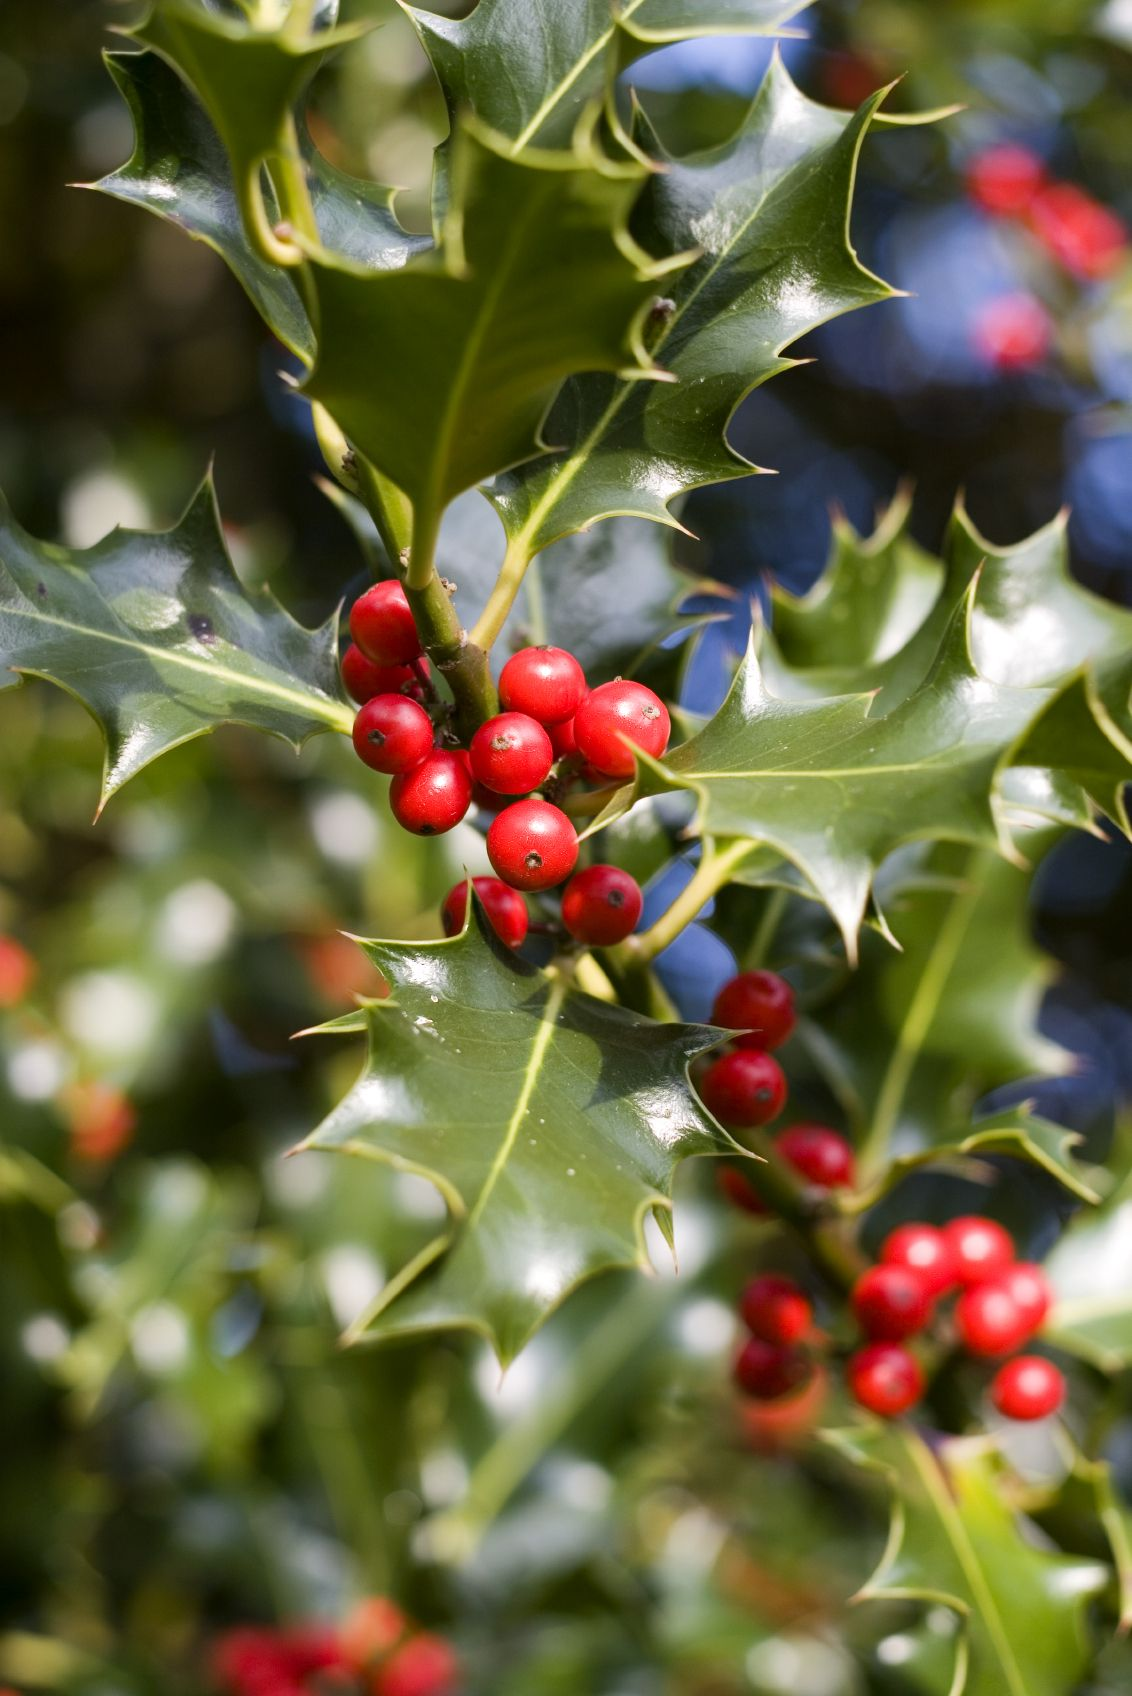 holly fertilization tips u2013 when and how to fertilize holly bushes